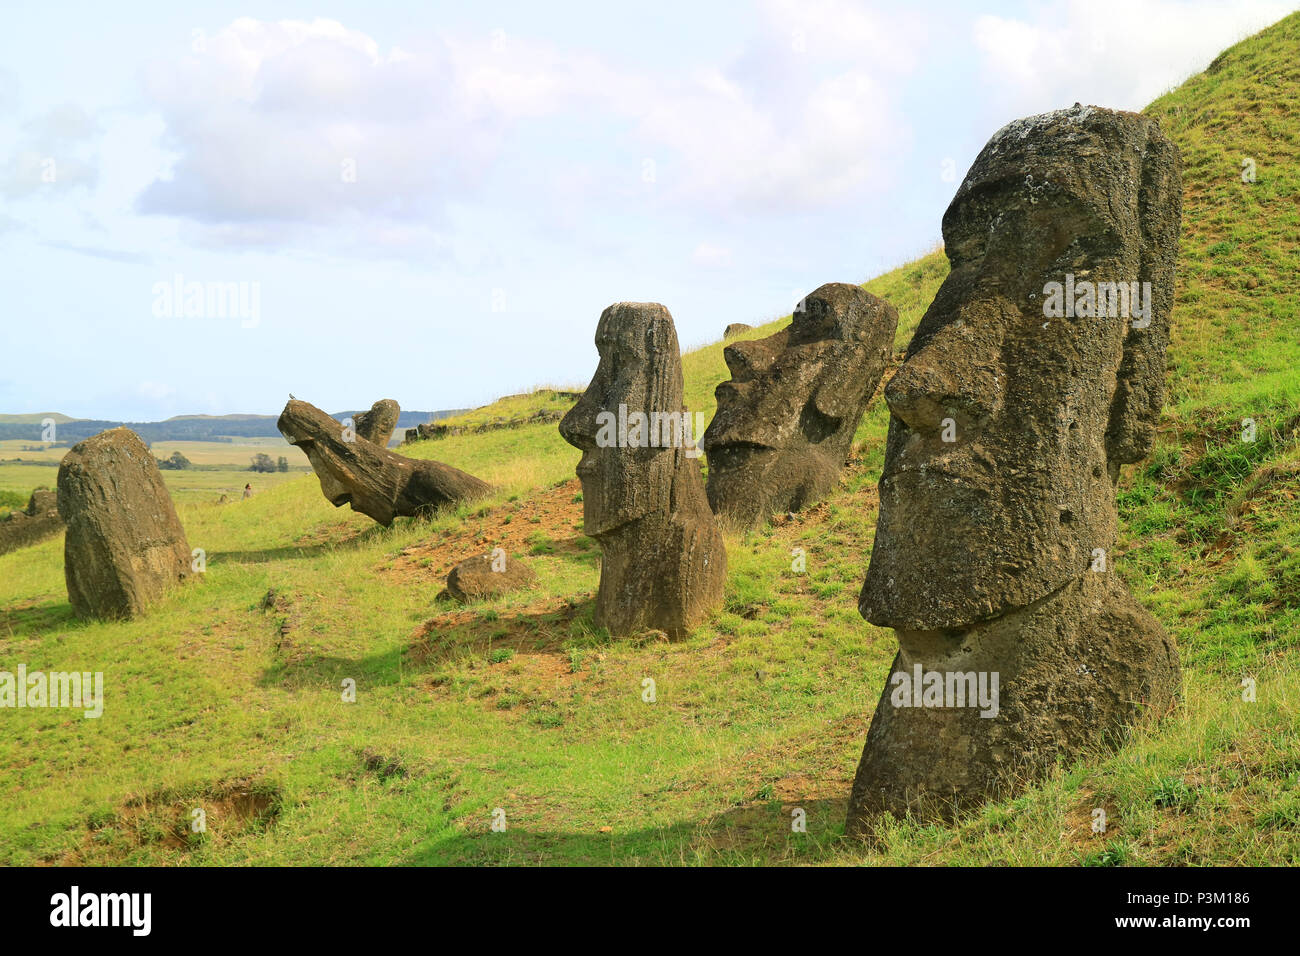 Many of Moai statues scattered on the slope of Rano Raraku volcano, Easter Island, Chile, UNESCO World Heritage, Archaeological Site - Stock Image